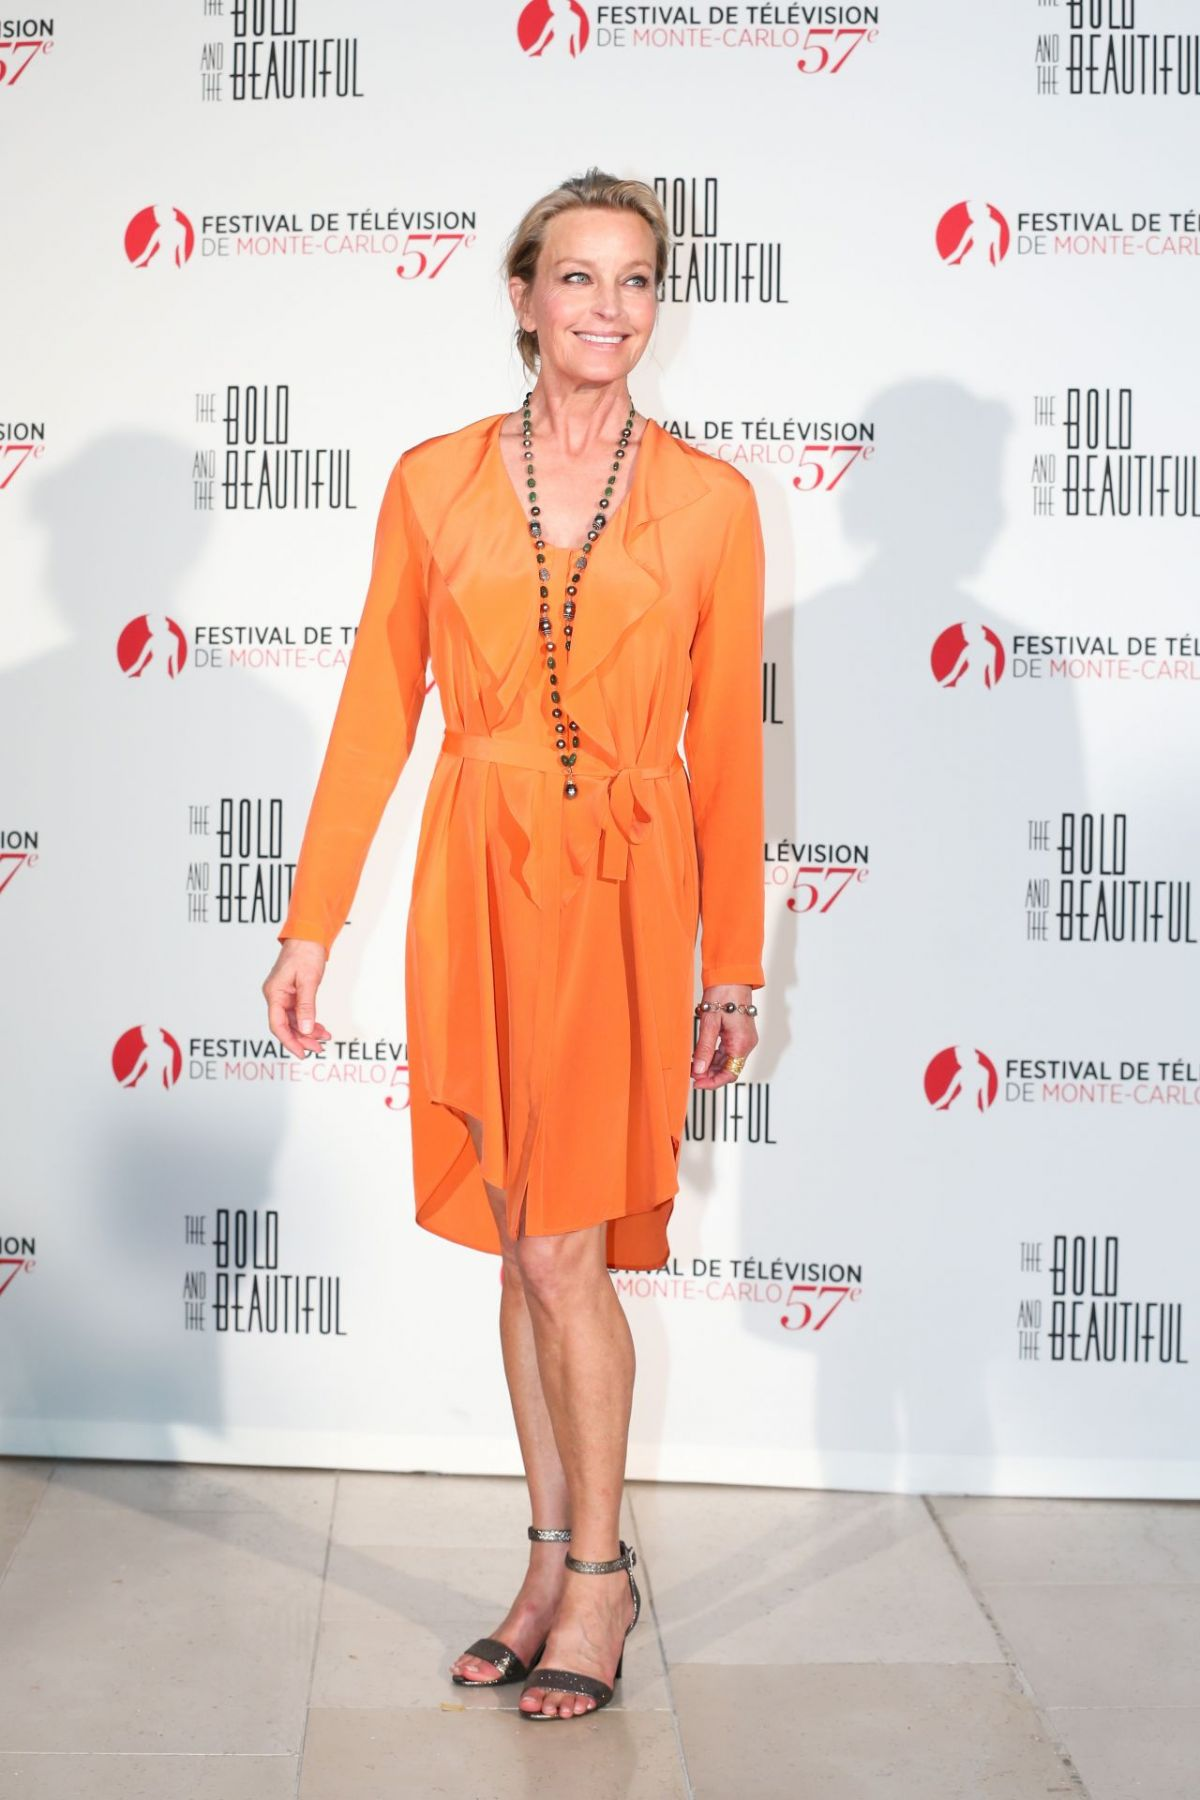 BO DEREK at The Bold and the Beautiful Anniversary at Monte Carlo TV Festival 06/18/2017